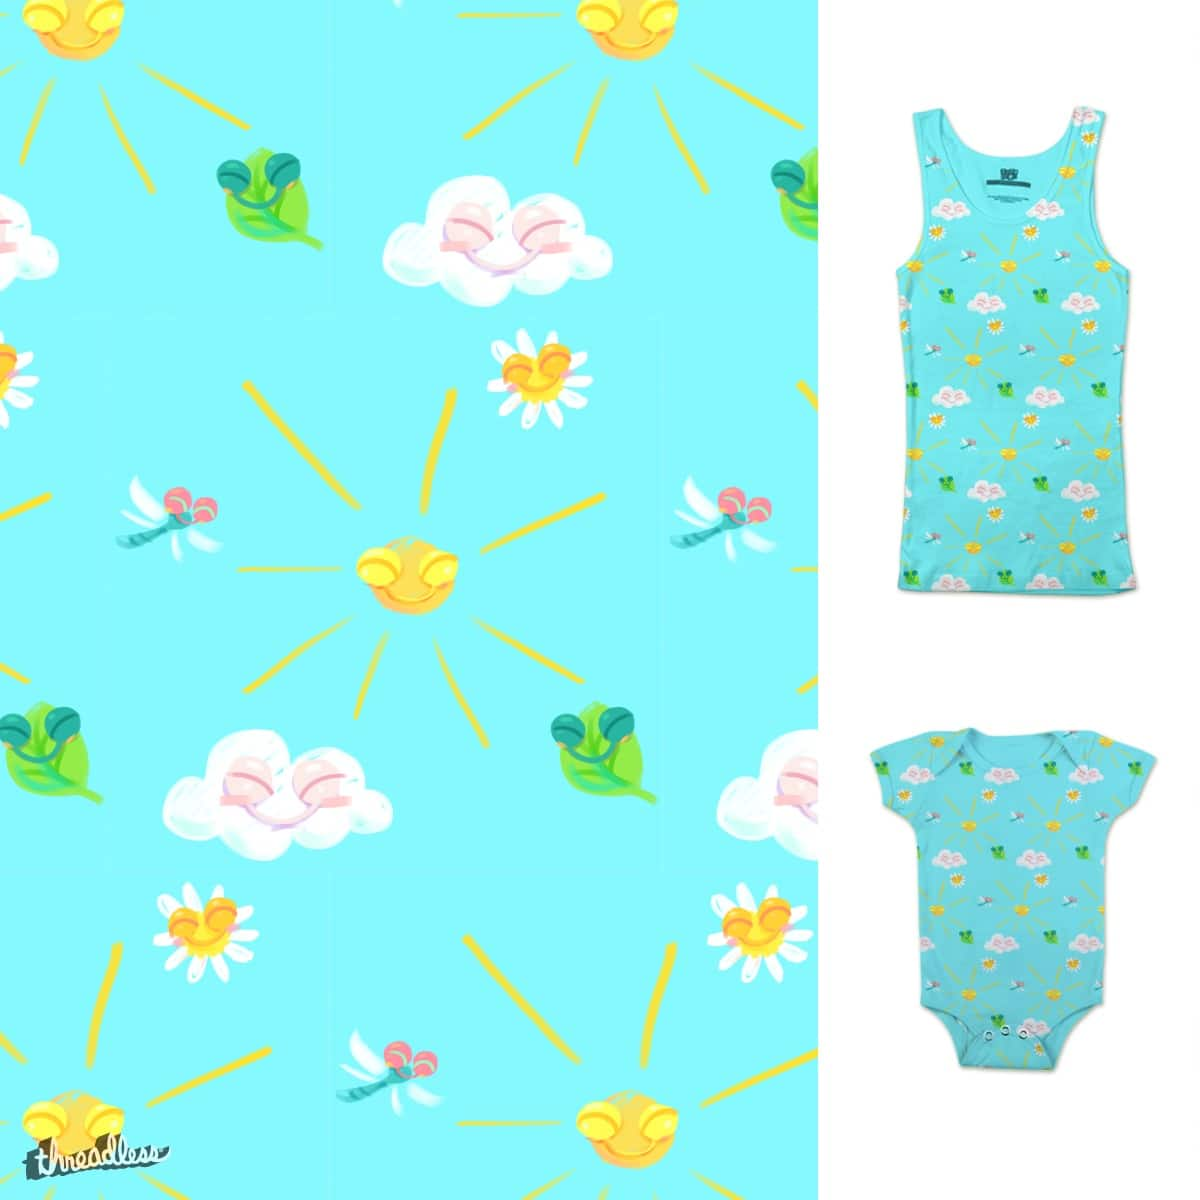 Sunny Day by ChungWoanLing on Threadless